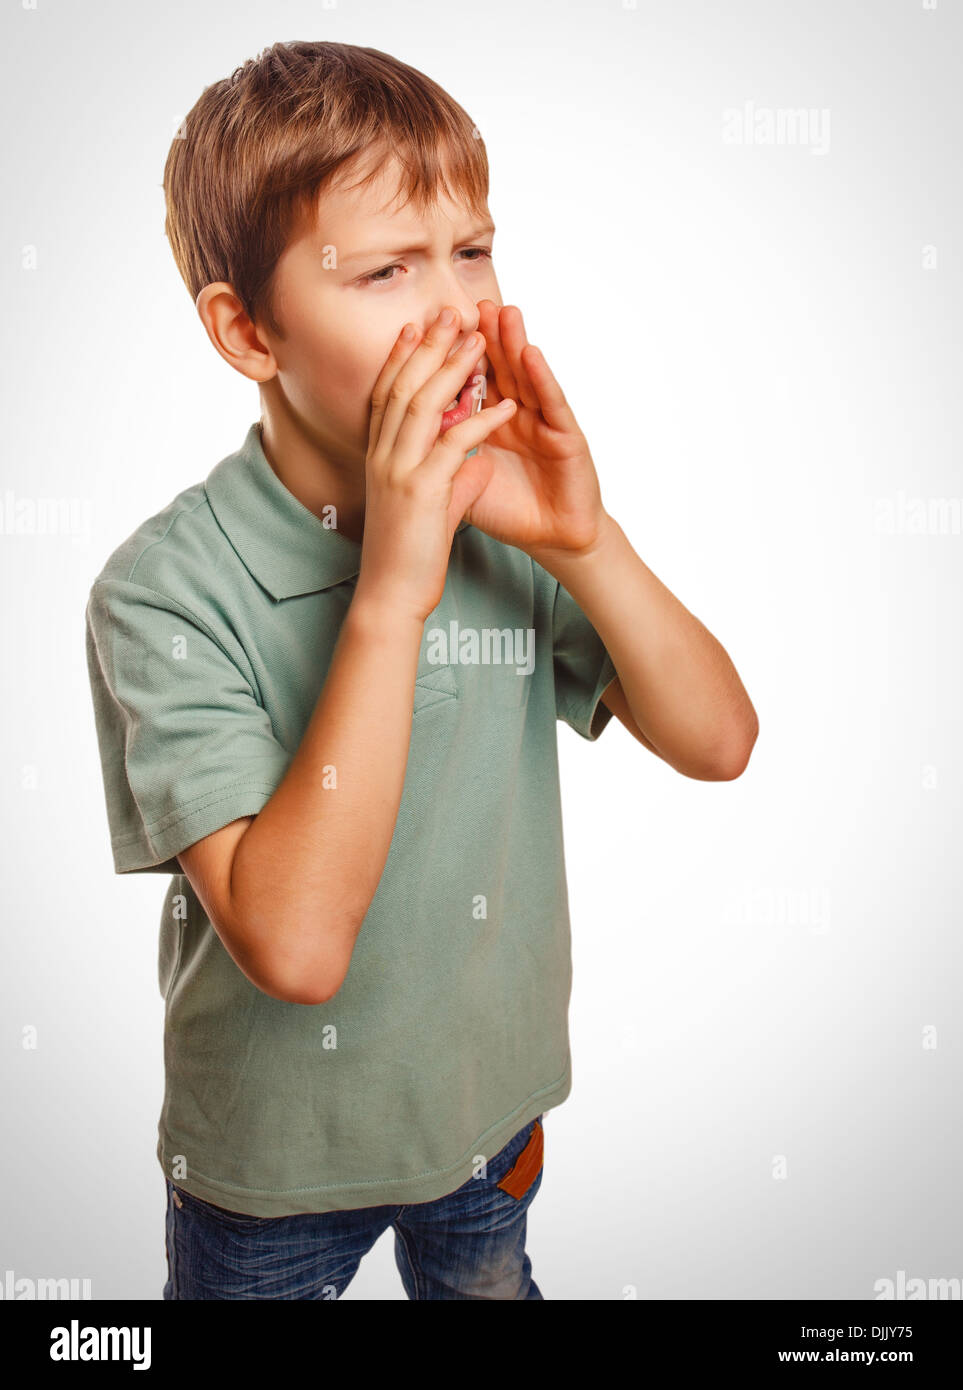 boy teenager cries calling opened his mouth emotion - Stock Image